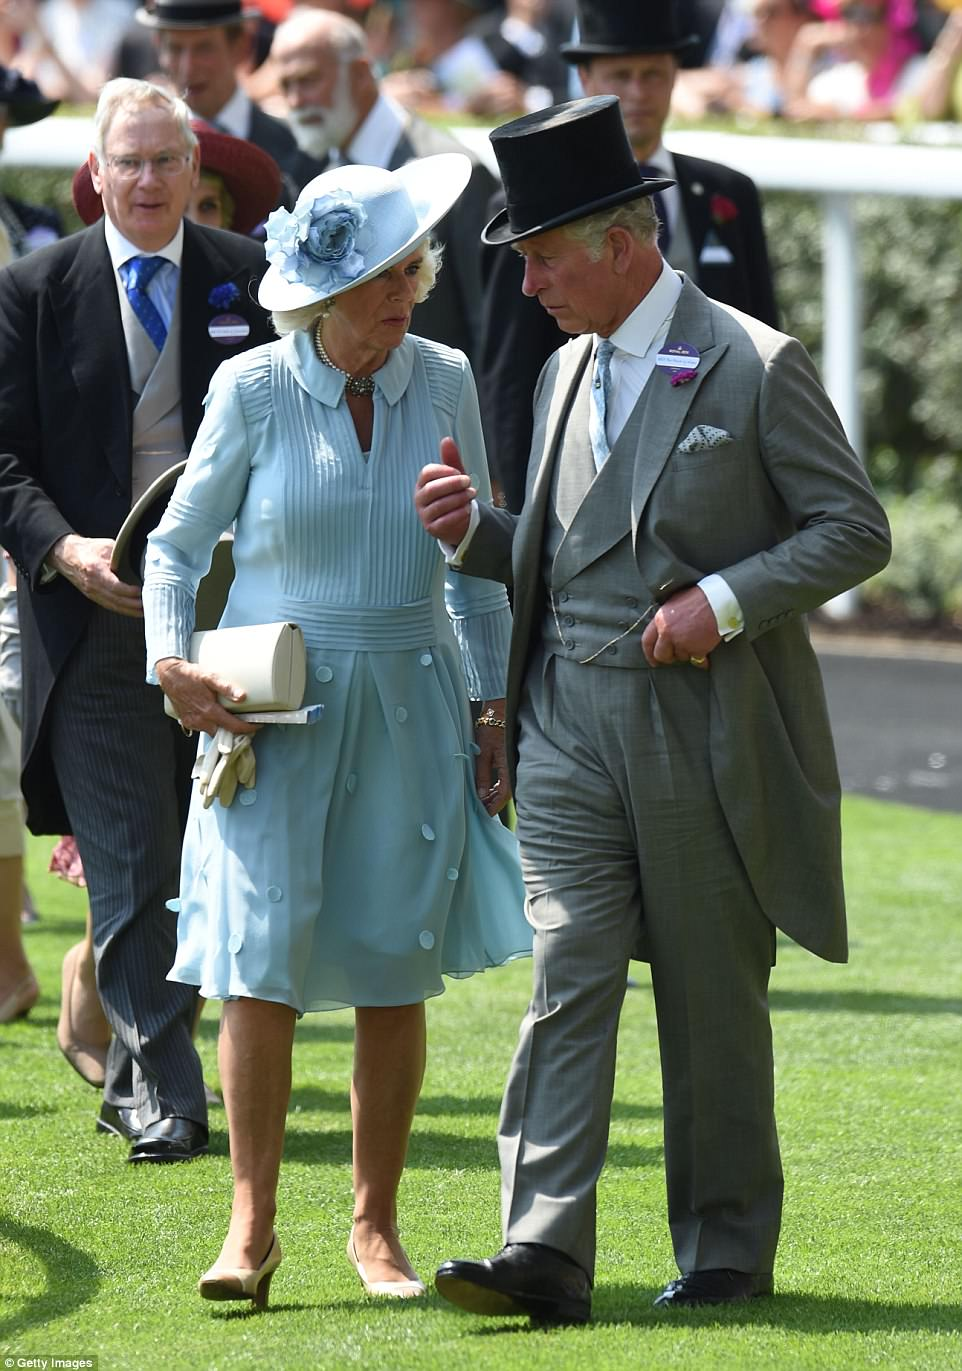 Prince Charles met up with his wife to attend Ascot after accompanying his mother to the State Opening of Parliament